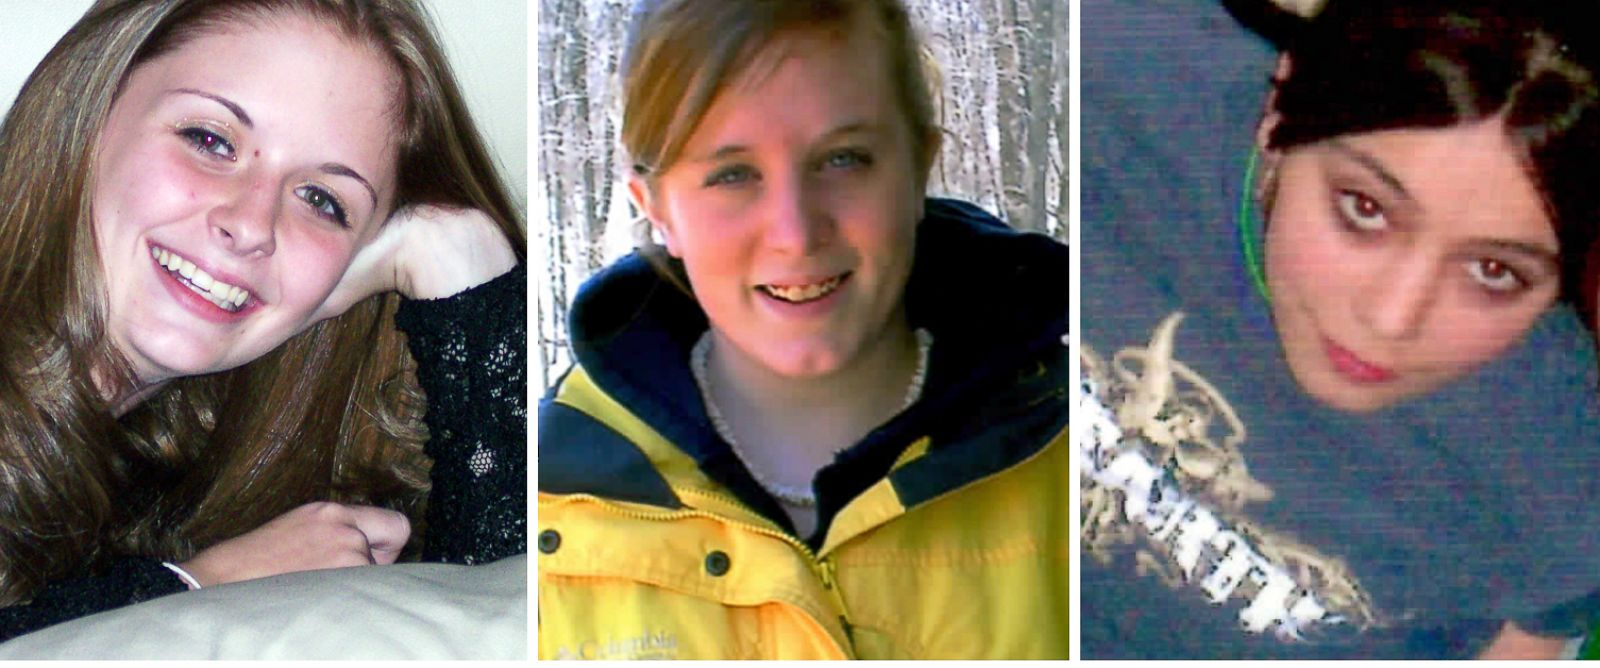 PHOTO: This combination of undated family photos shows, from left, Amber Marie Rose, Natasha Weigel, and Amy Rademaker. All three were killed in deadly car crashes involving GMs Cobalt during 2005-2006.